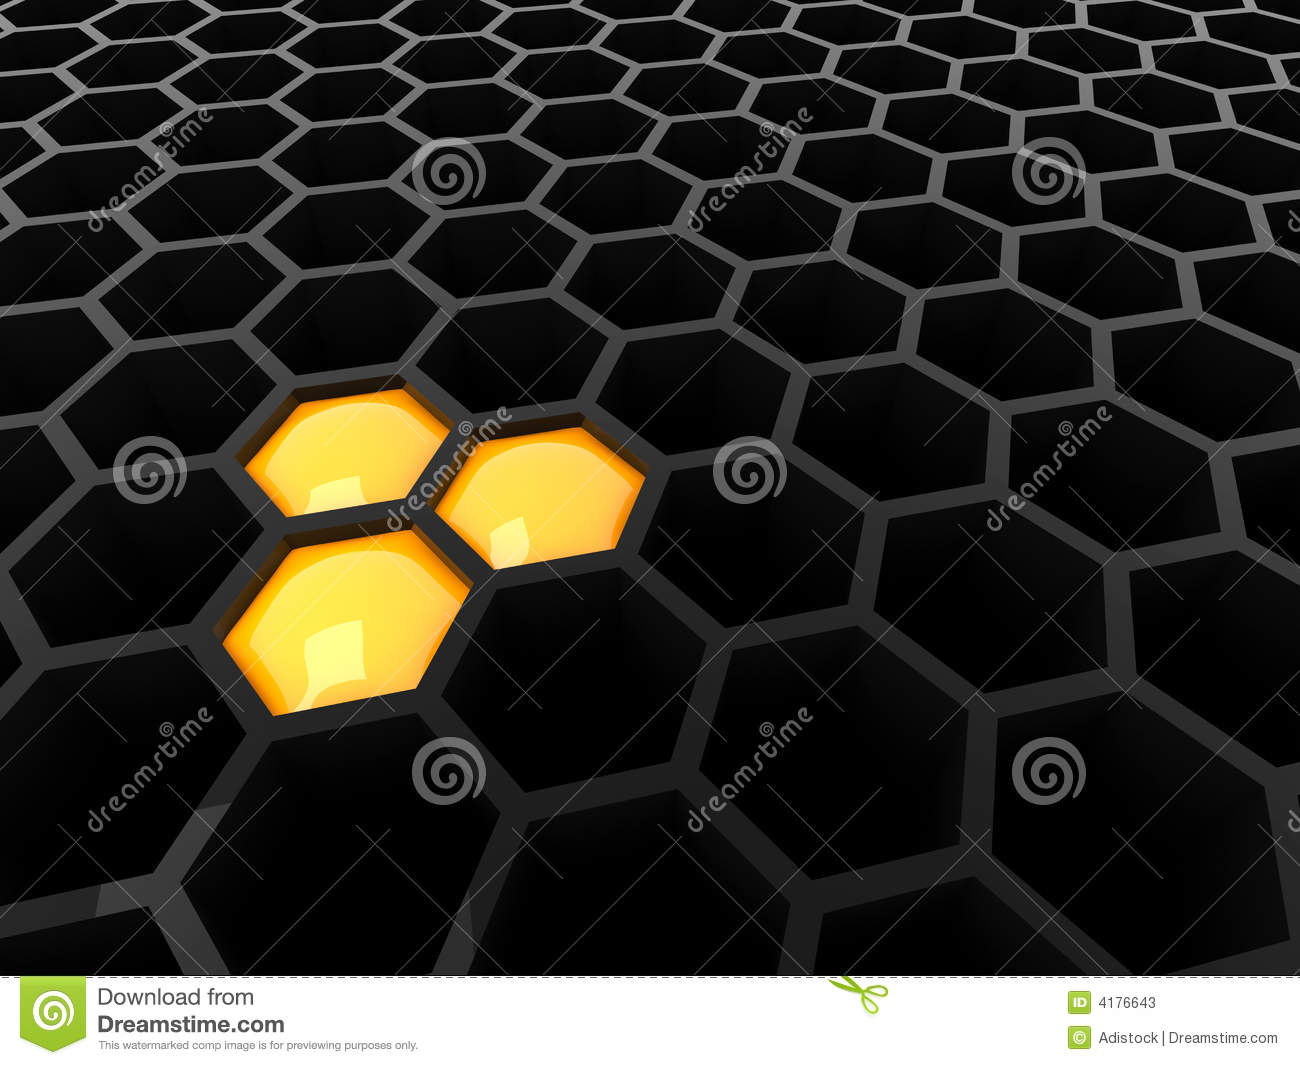 Hexagon Wallpaper 3d 3d Black Tech Honeycomb Stock Photos Image 4176643